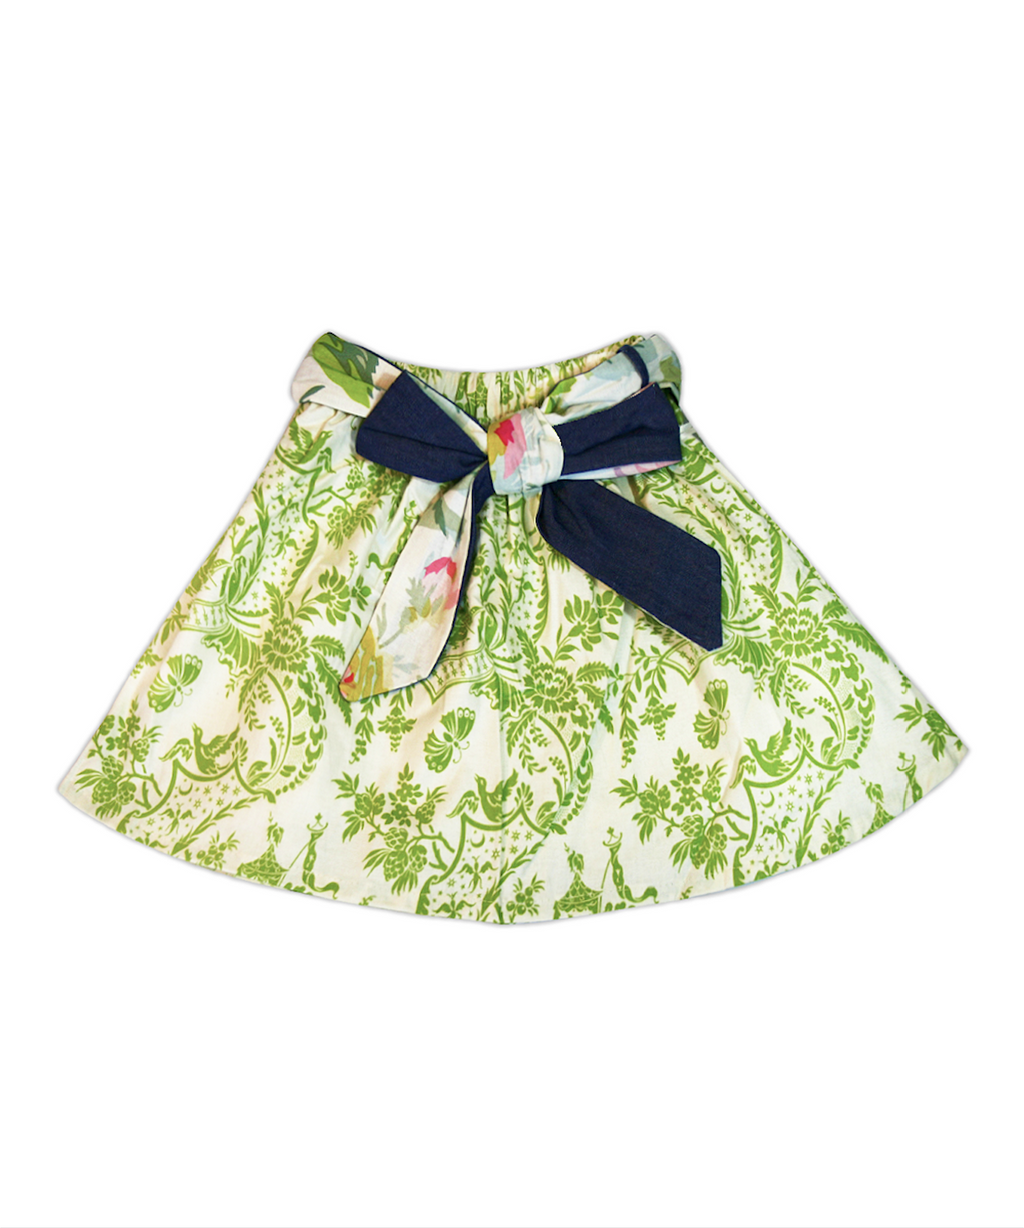 Milly Green Butterfly Toile Skirt